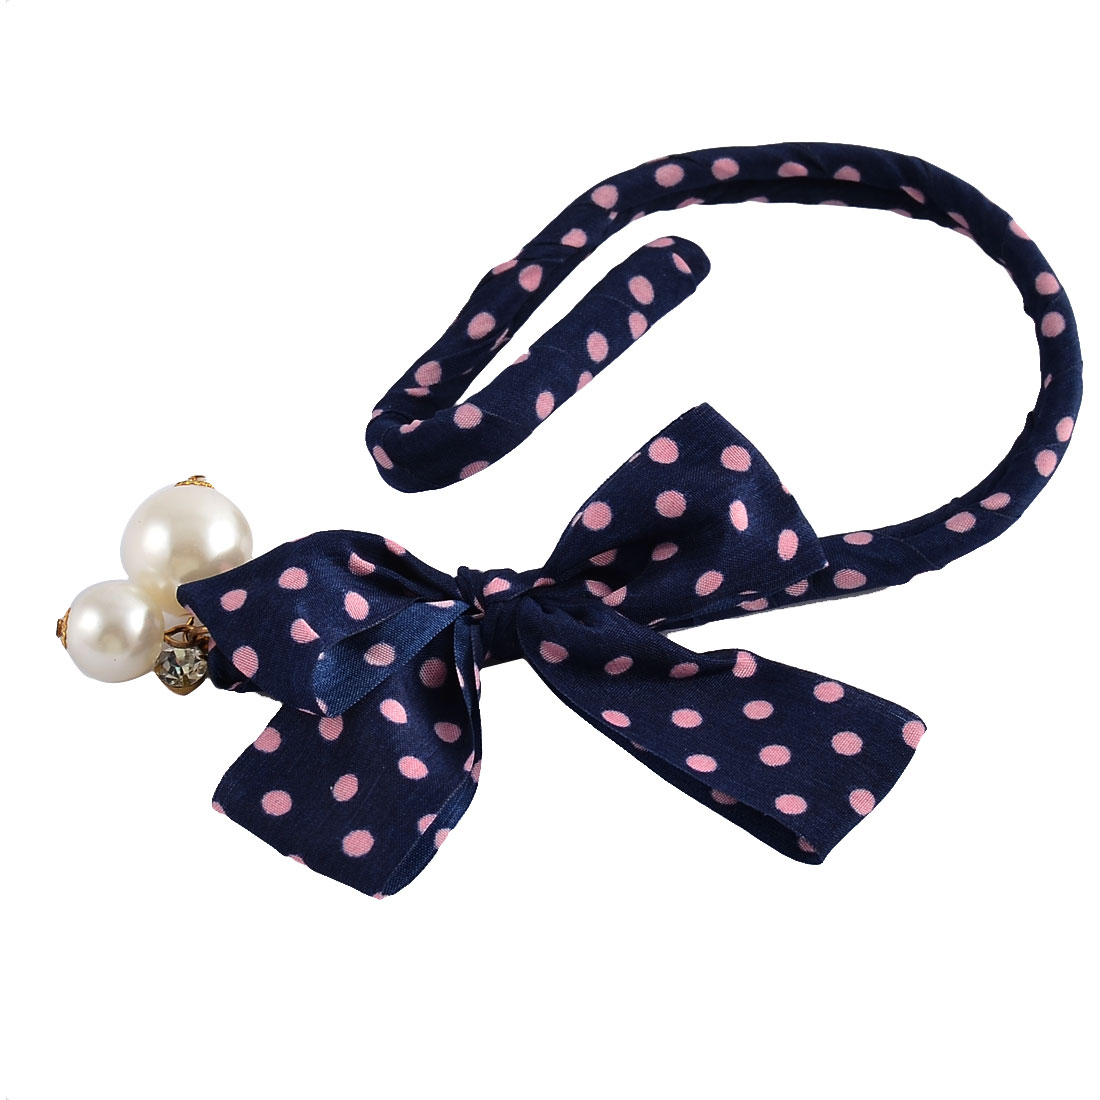 Bowknot Rhinestone Man-made Imitation Pearl Decor Hair Styling Ponytail Bun Holder Maker